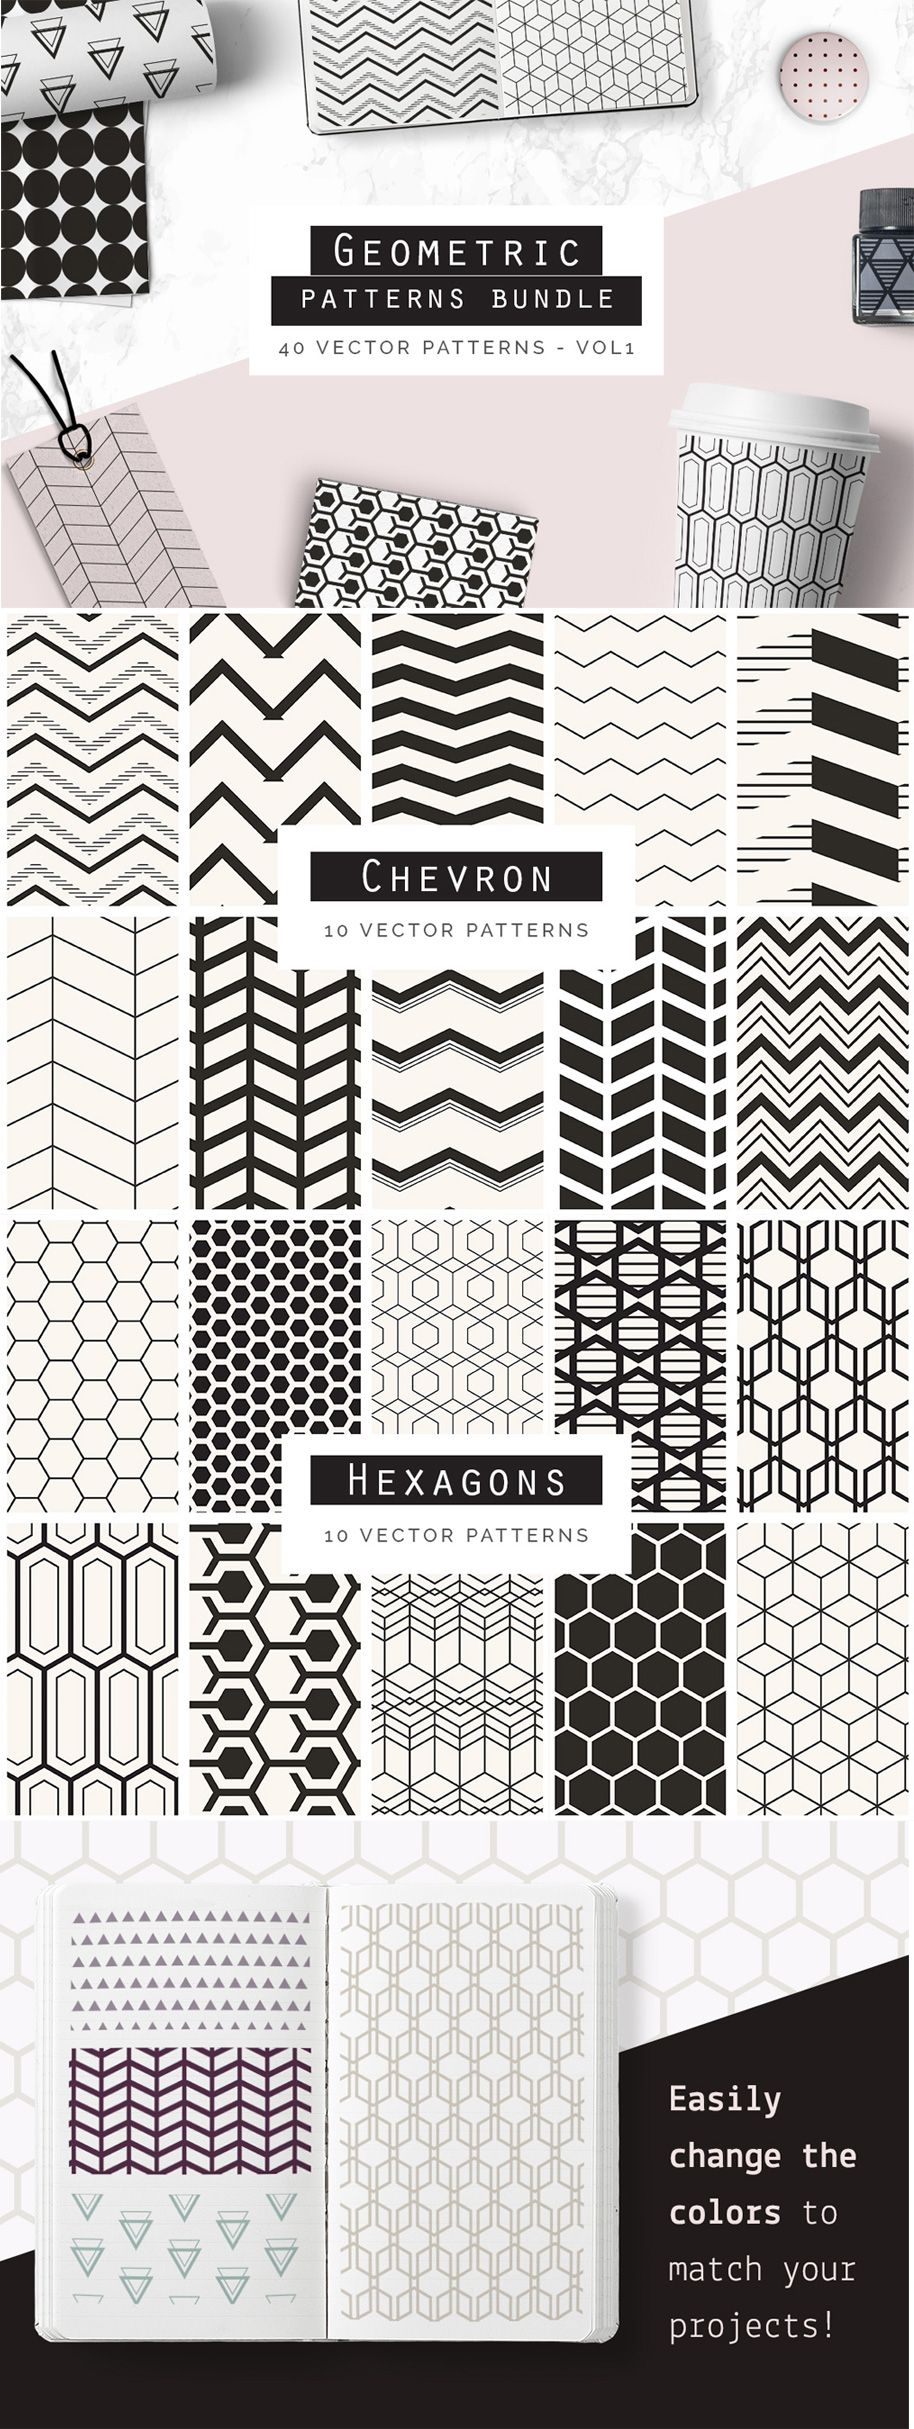 Geometric Patterns Vol1 Geometric Pattern Geometric Geometric Designs